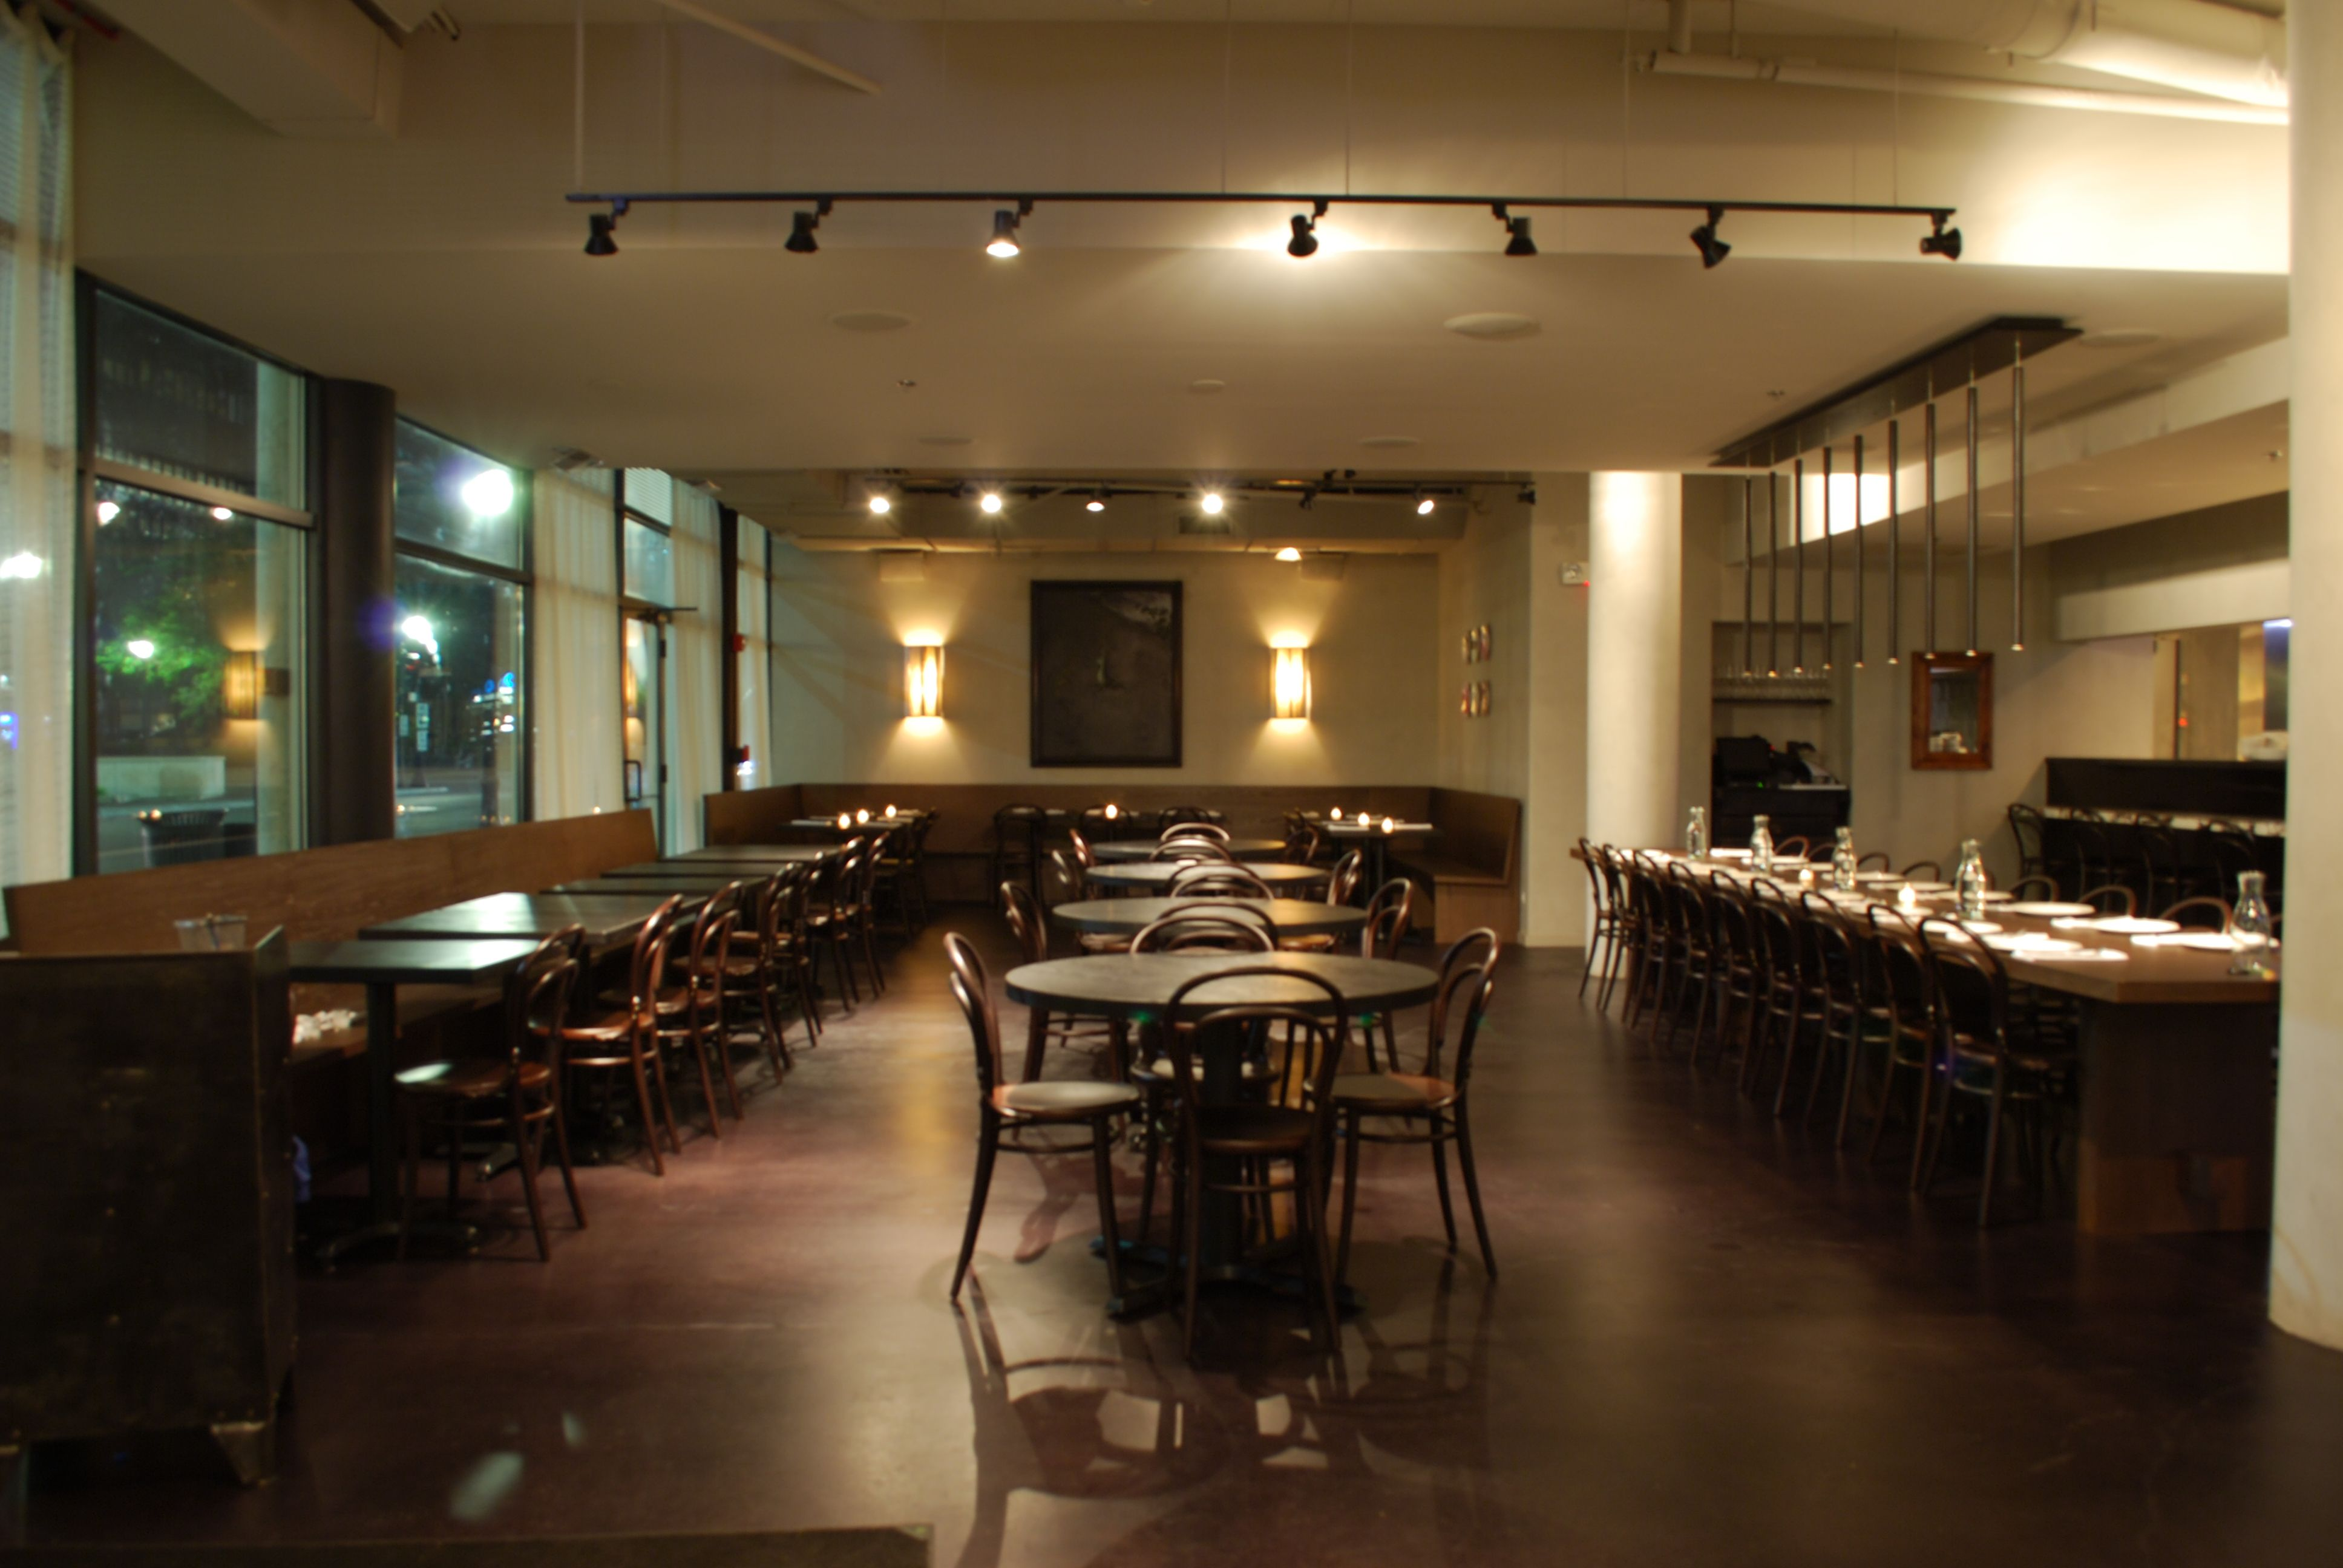 Located In Evanston Il Boltwood Is New American Cuisine Rooted The Farm To Table Genre Our Menu Changes Daily